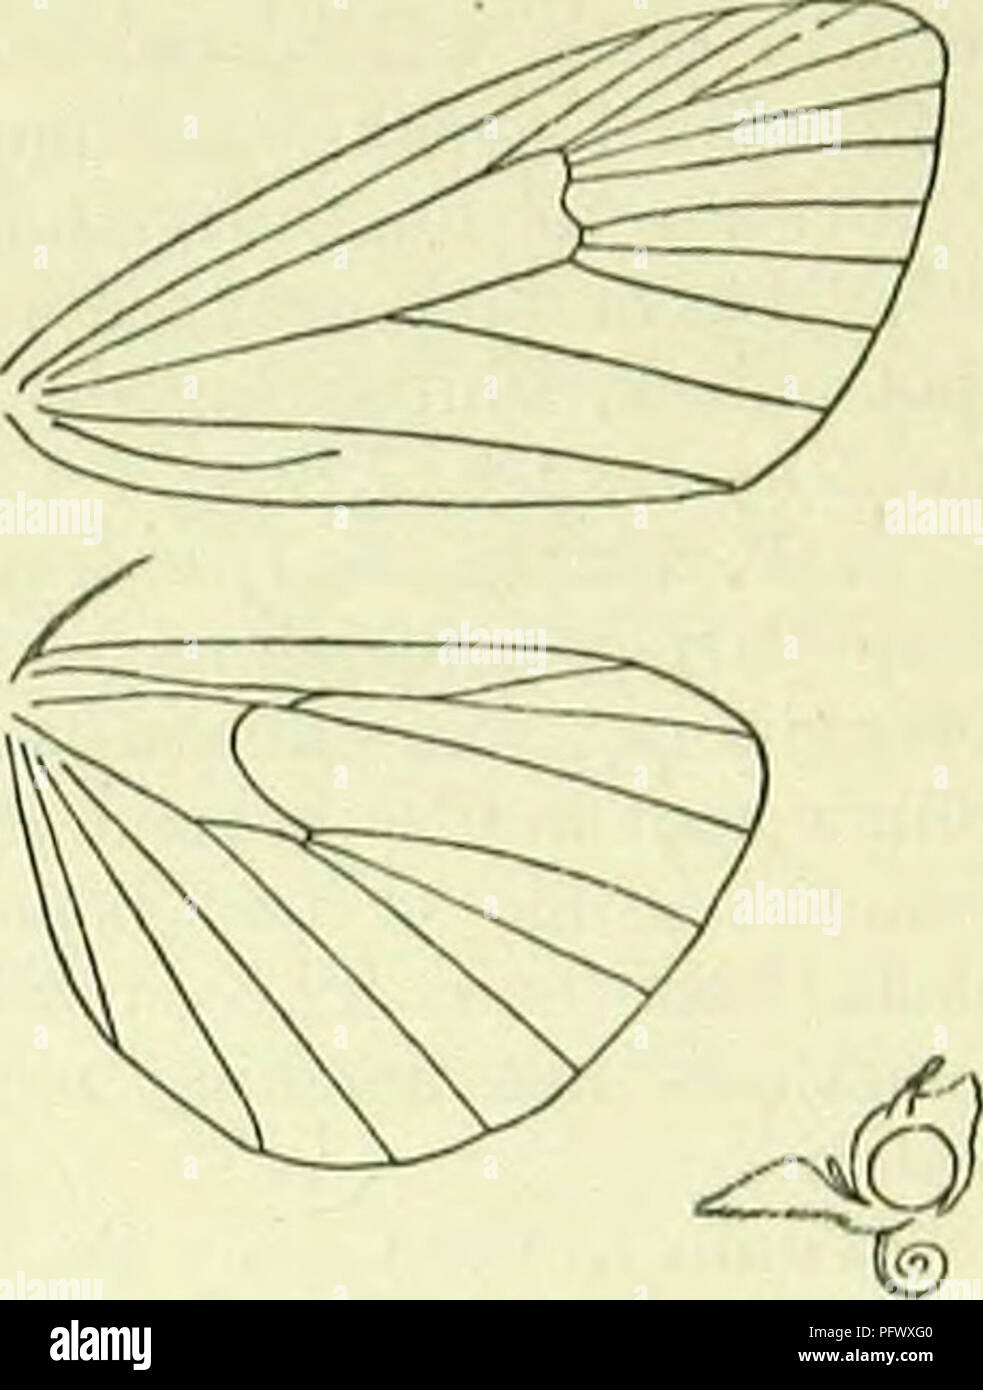 . A handbook of British lepidoptera. Lepidoptera. pybausta] PYRAUSTIDAE 413. Neuration and head of Pyrausta purpuralU. whitish-green; dots green; head whitish-brown : in a slight web beneath lower leaves of Solidago ; 8, 9. 2. P. cingulata, L. 13-16 mm. Forewings blackish; a narrow very slightly sinuate white fascia beyond middle ; tips of cilia white. Hindwings as forewings, but fascia slightly curved. Britain to Perth, W. Ireland, rather local; Europe, Asia Minor; 5, 7, 8. Larva in a web beneath lower leaves of Salvia pratensis ; 6, 9. 3. P. nigrata, Sc. (anguinalis, Hb.) 13-16 mm. Forewings - Stock Image